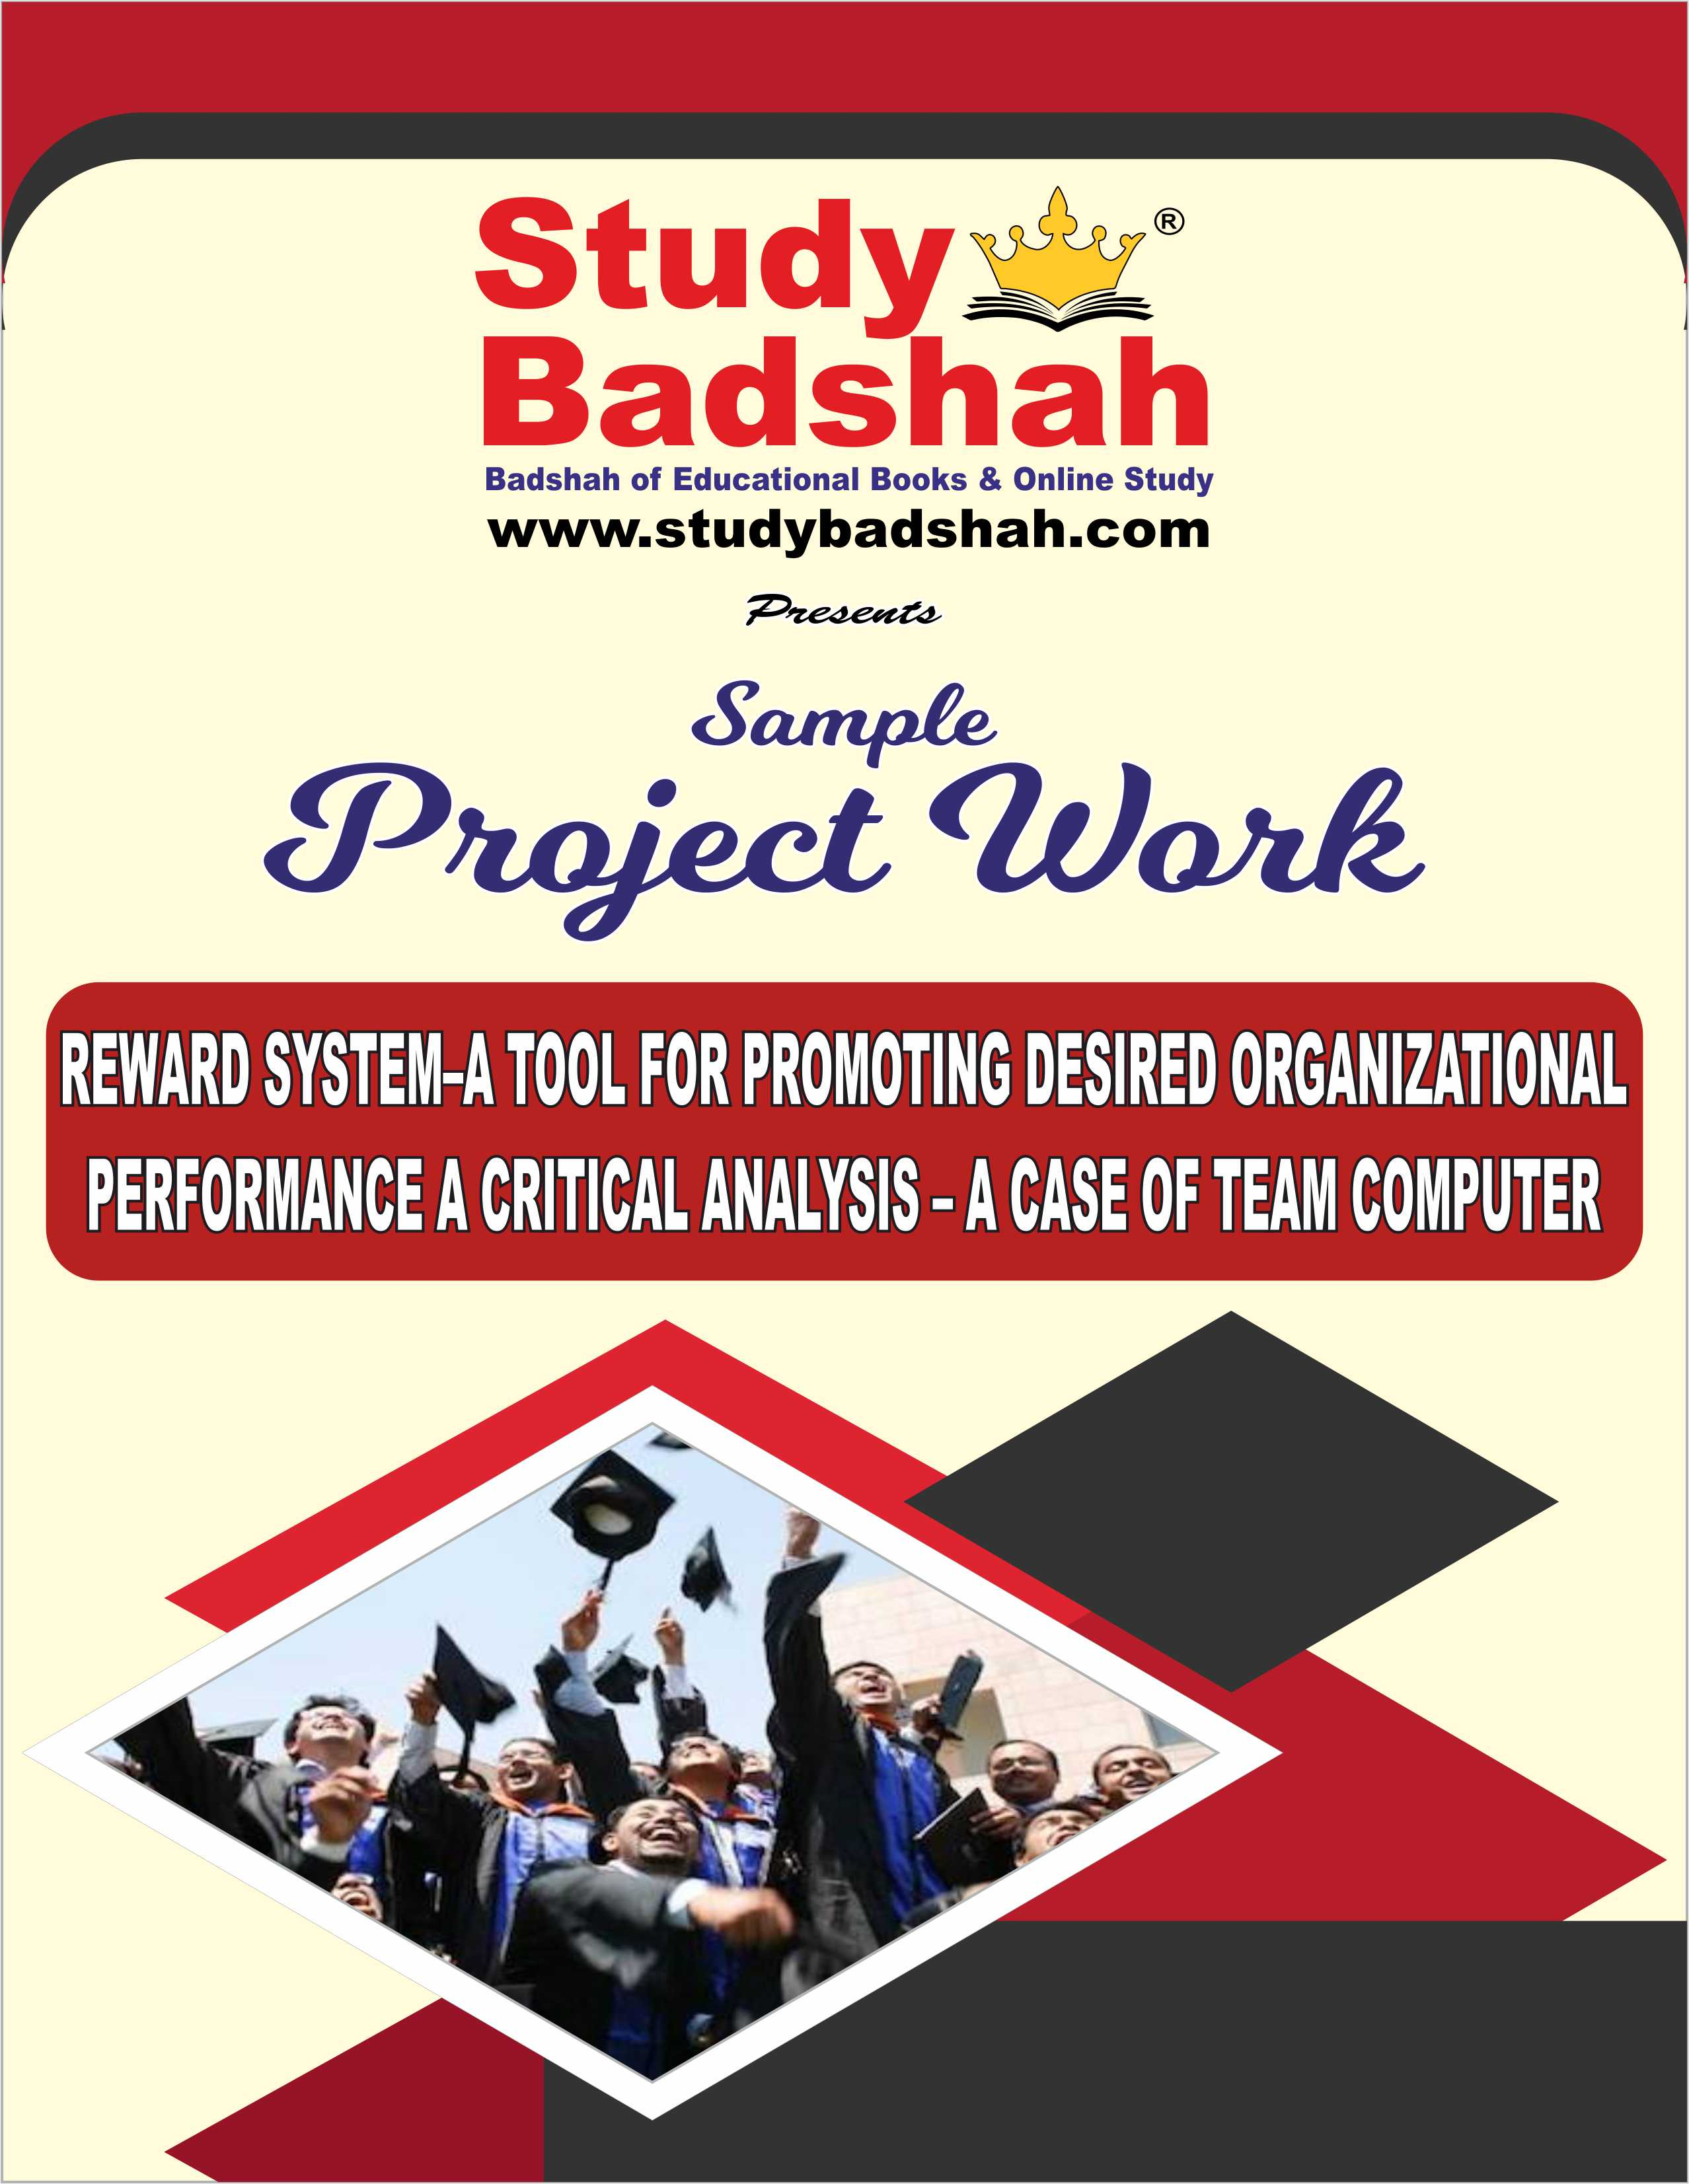 Reward System A Tool for Promoting Desired Organizational Performance a Critical Analysis A Case of Team Computer